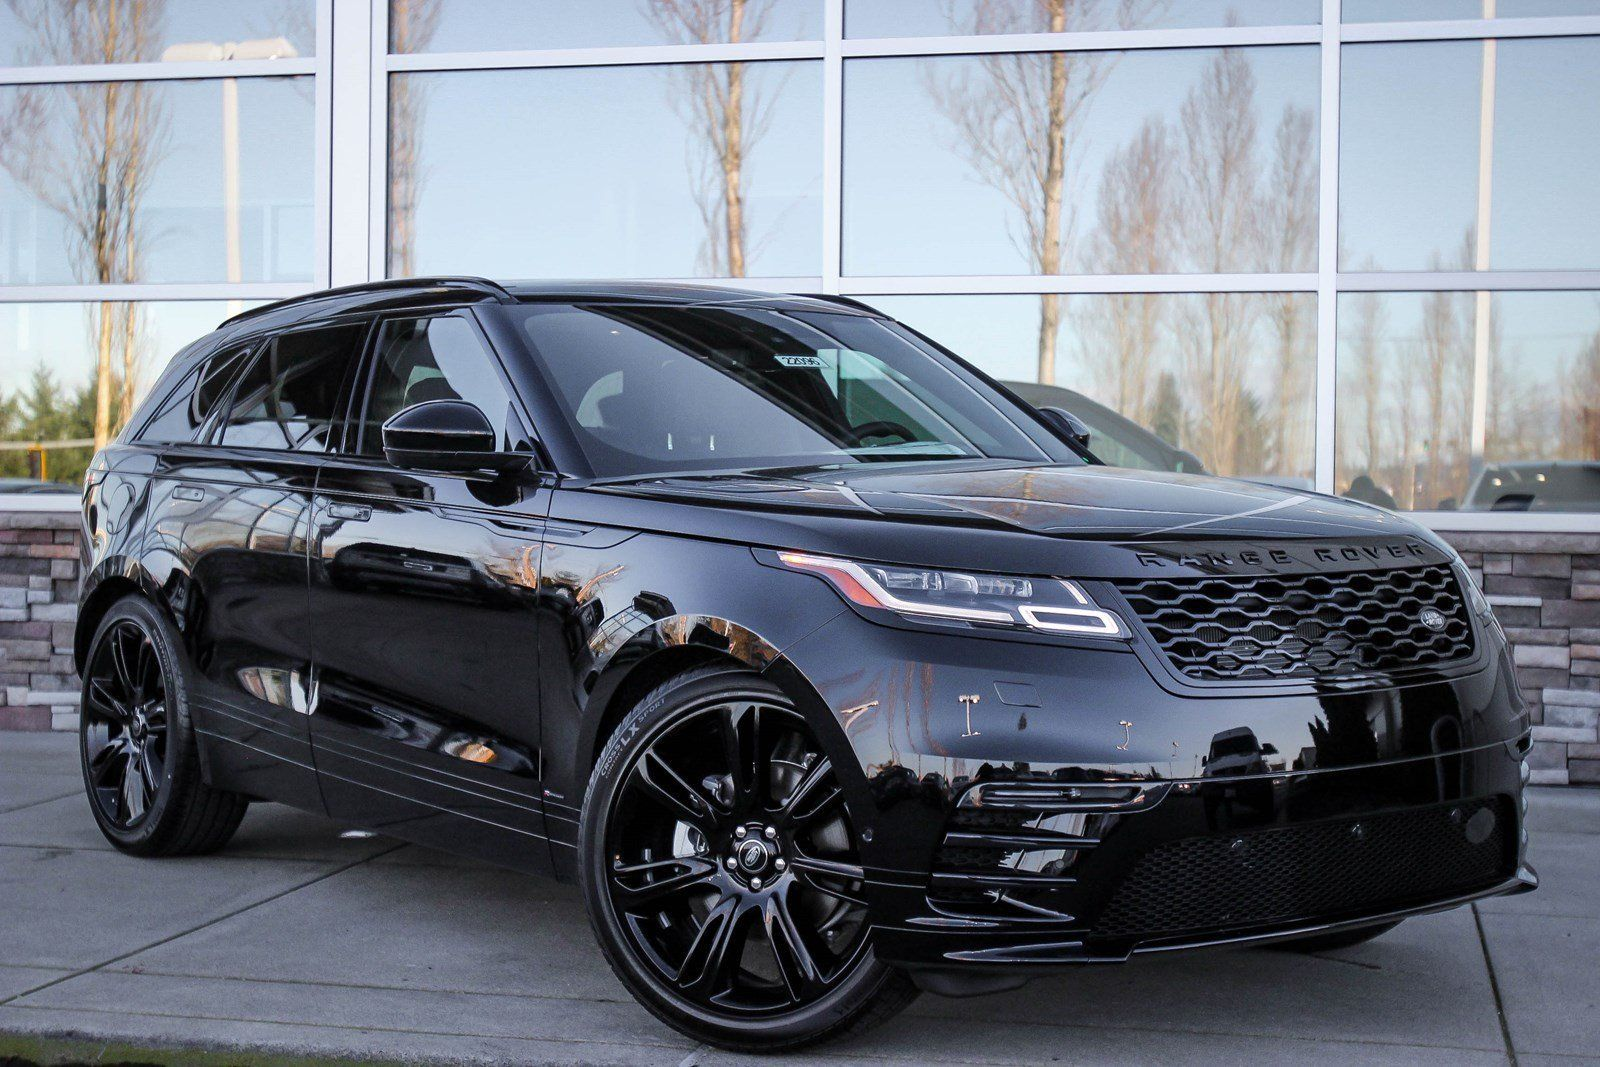 188 New SUVs in Stock Edmonds Range rover, Range rover